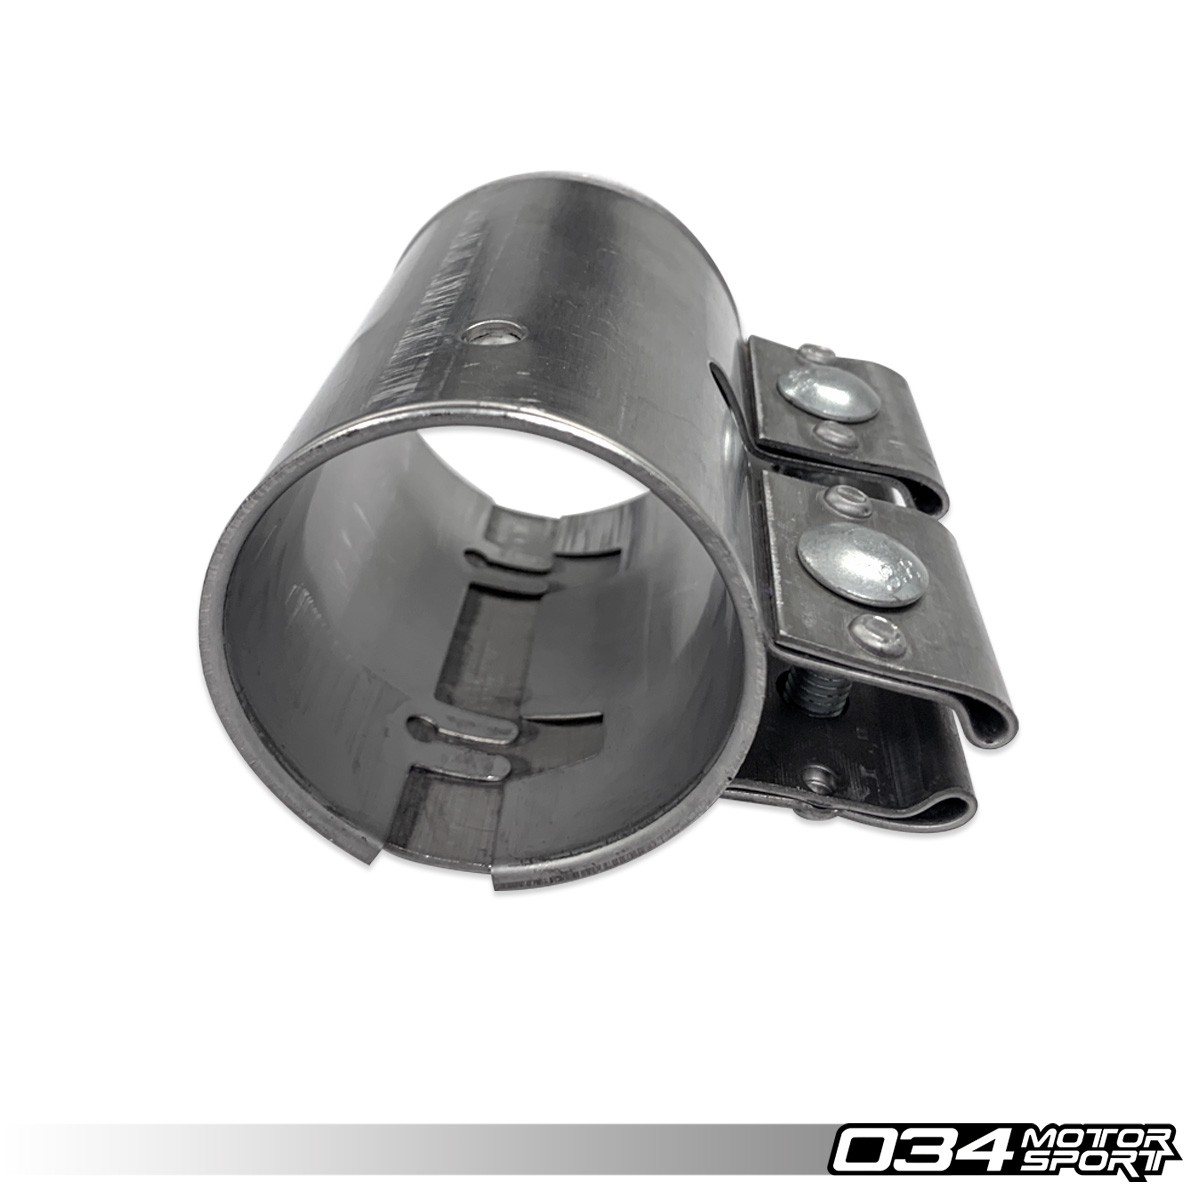 70mm Exhaust Clamp for Audi 8V A3/S3, 8S TTS, and VW MkVII Golf R 034-105-D303